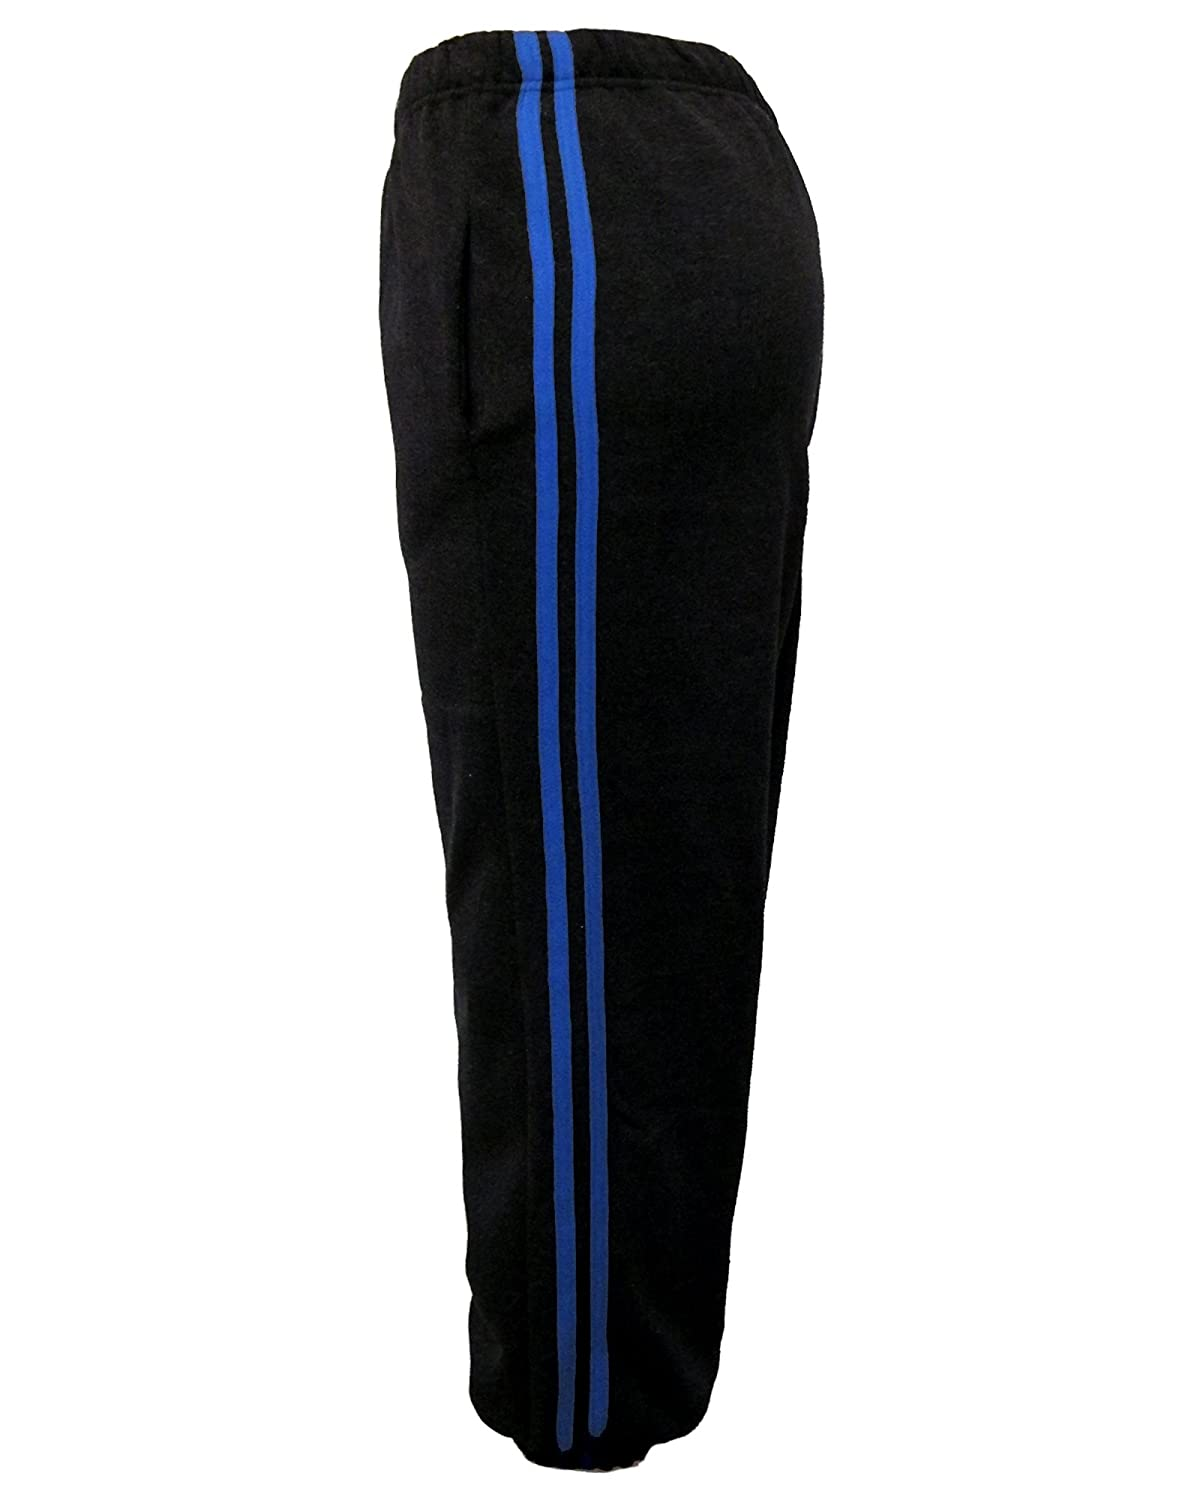 BODY Kids Jogging Bottoms with Side Pockets and Stripes